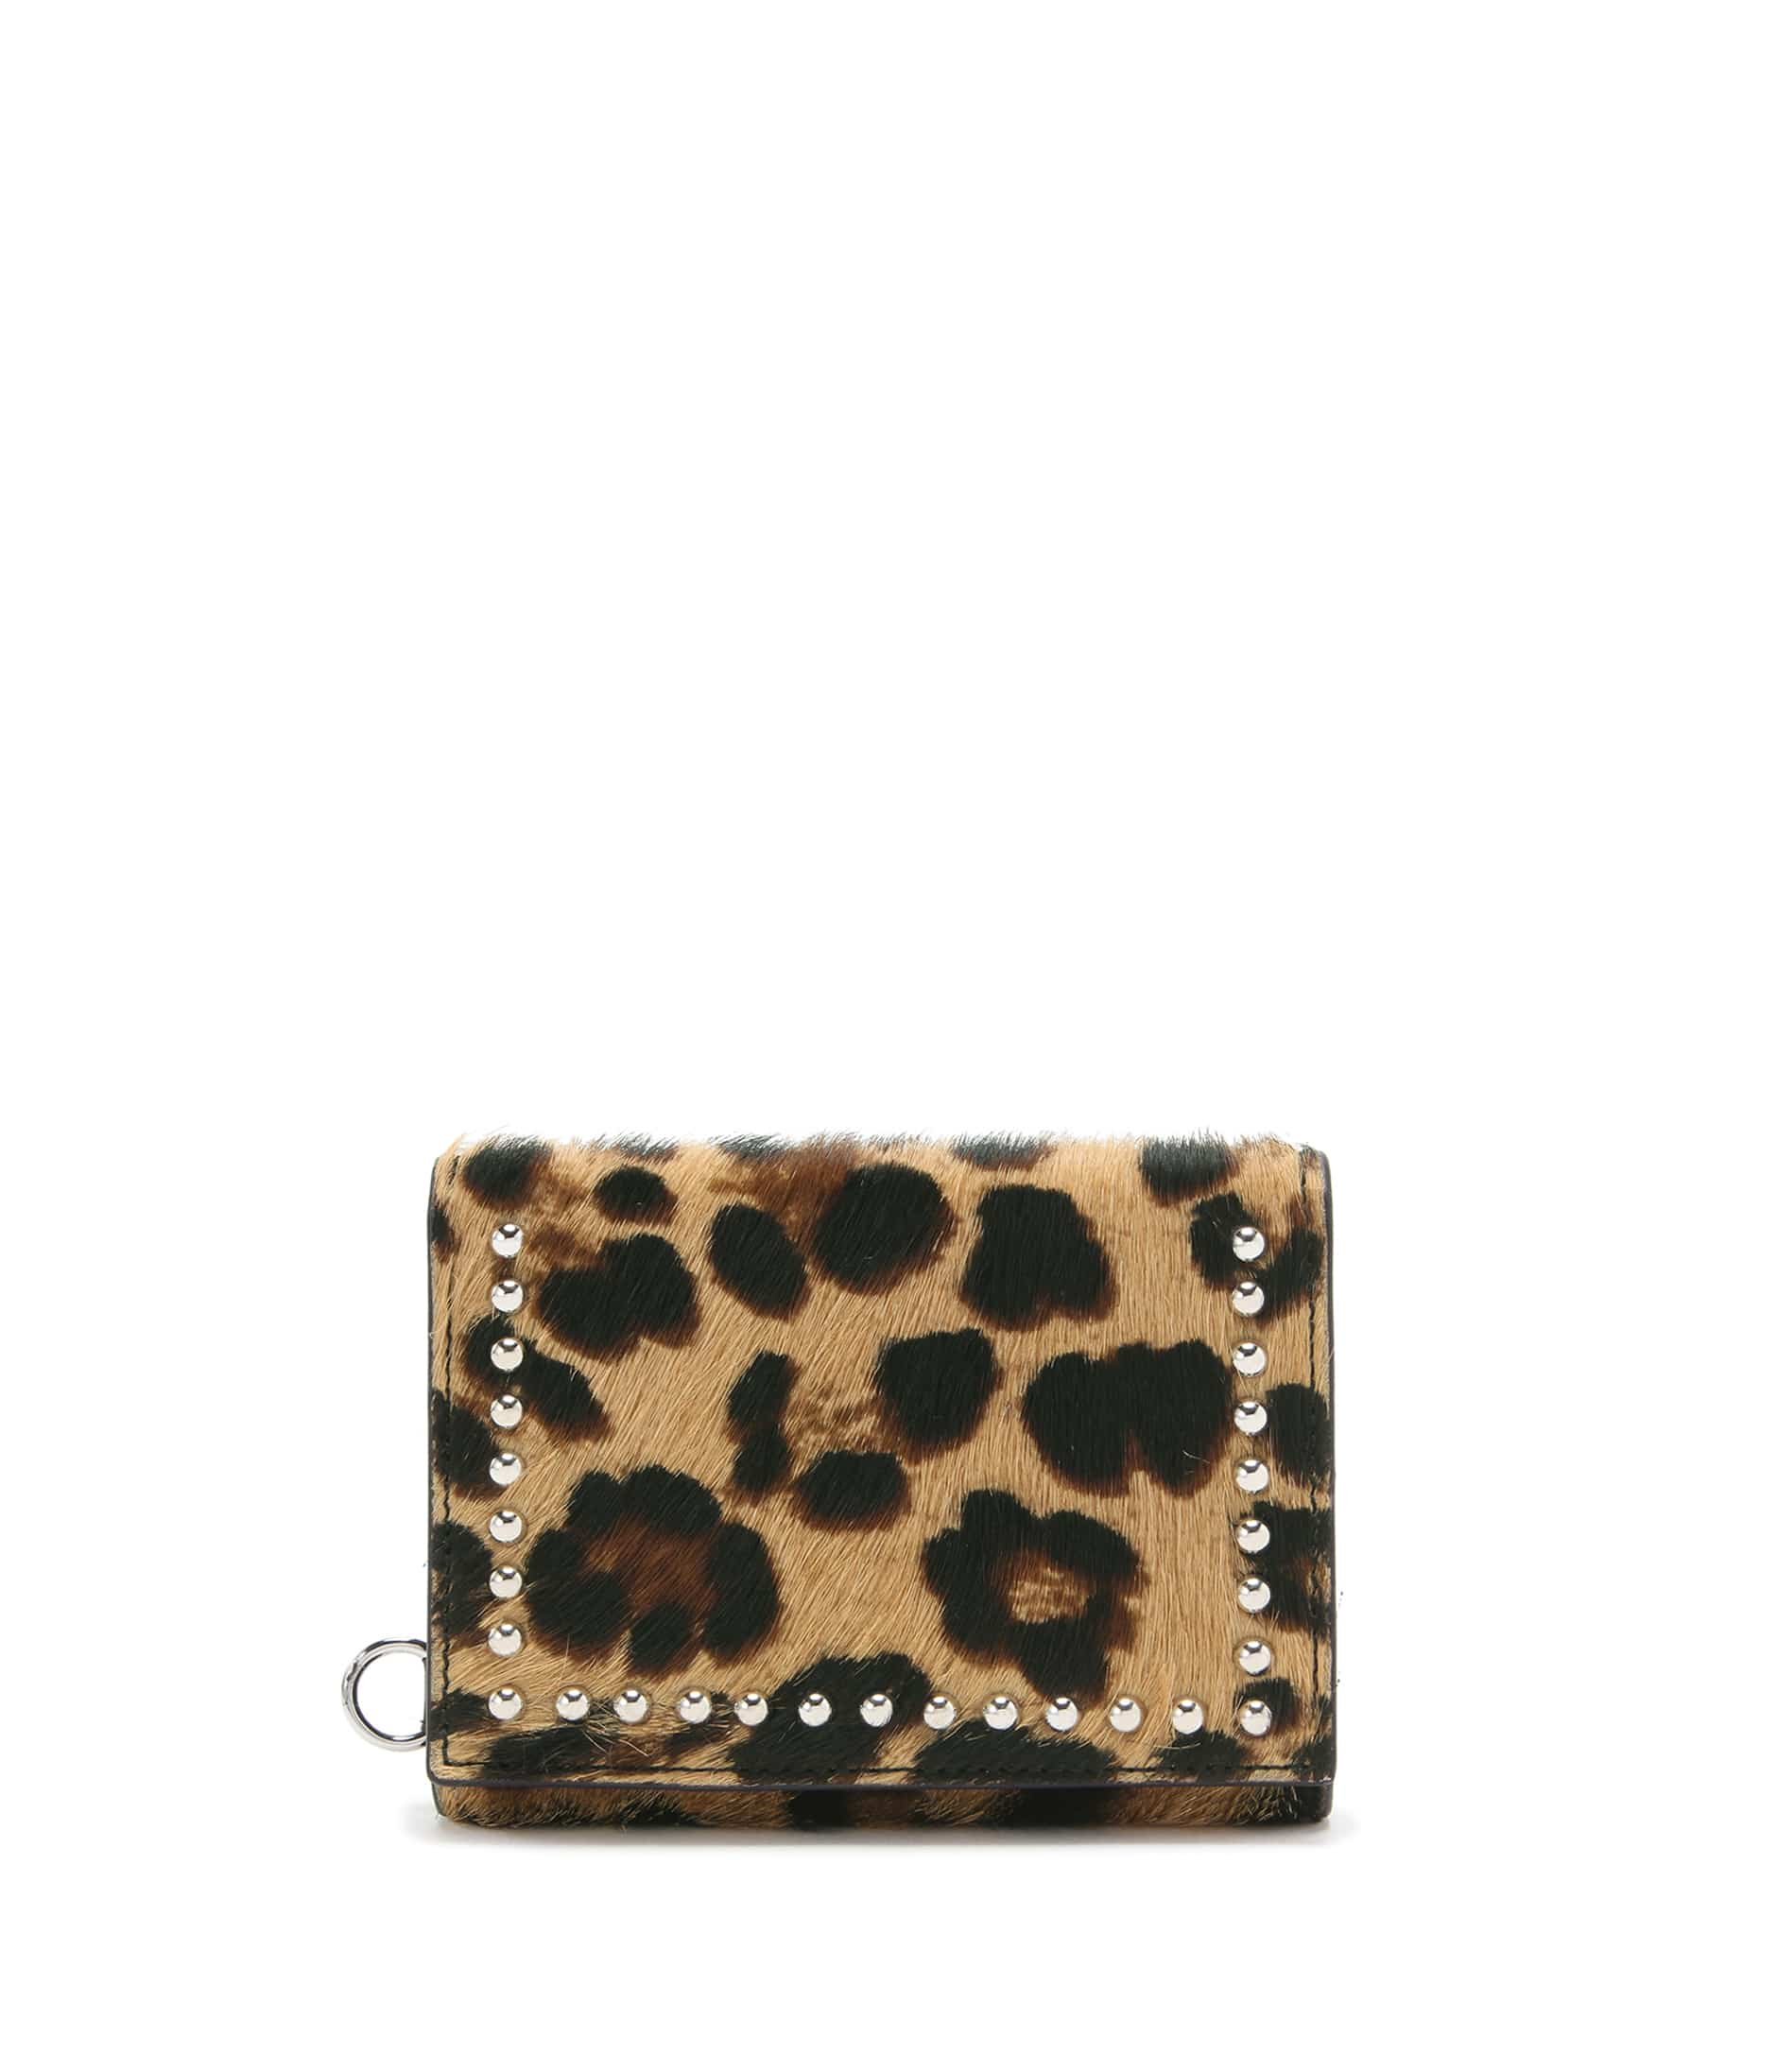 FOLDED WALLET WITH STUDS 詳細画像 LEOPARD 1